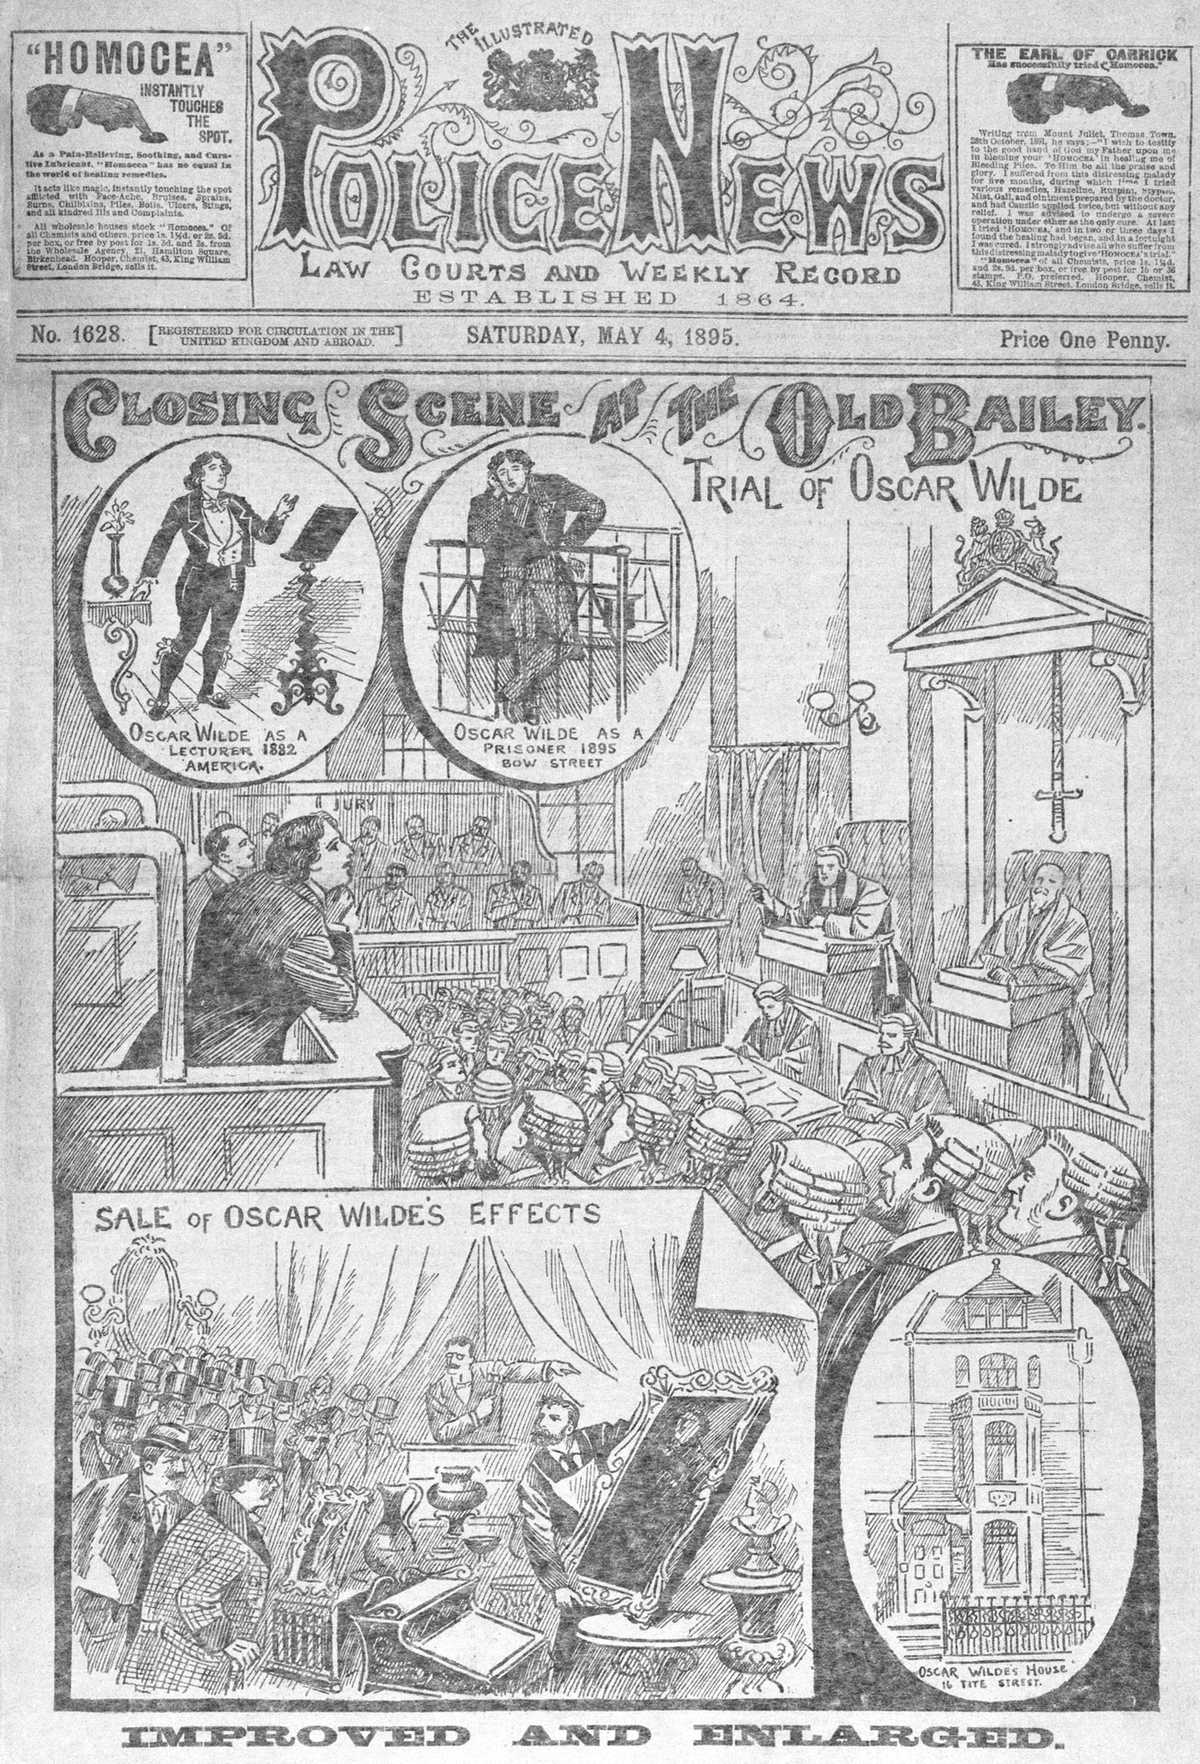 Oscar Wilde's trial as recorded in The Illustrated Police News, May 4, 1895